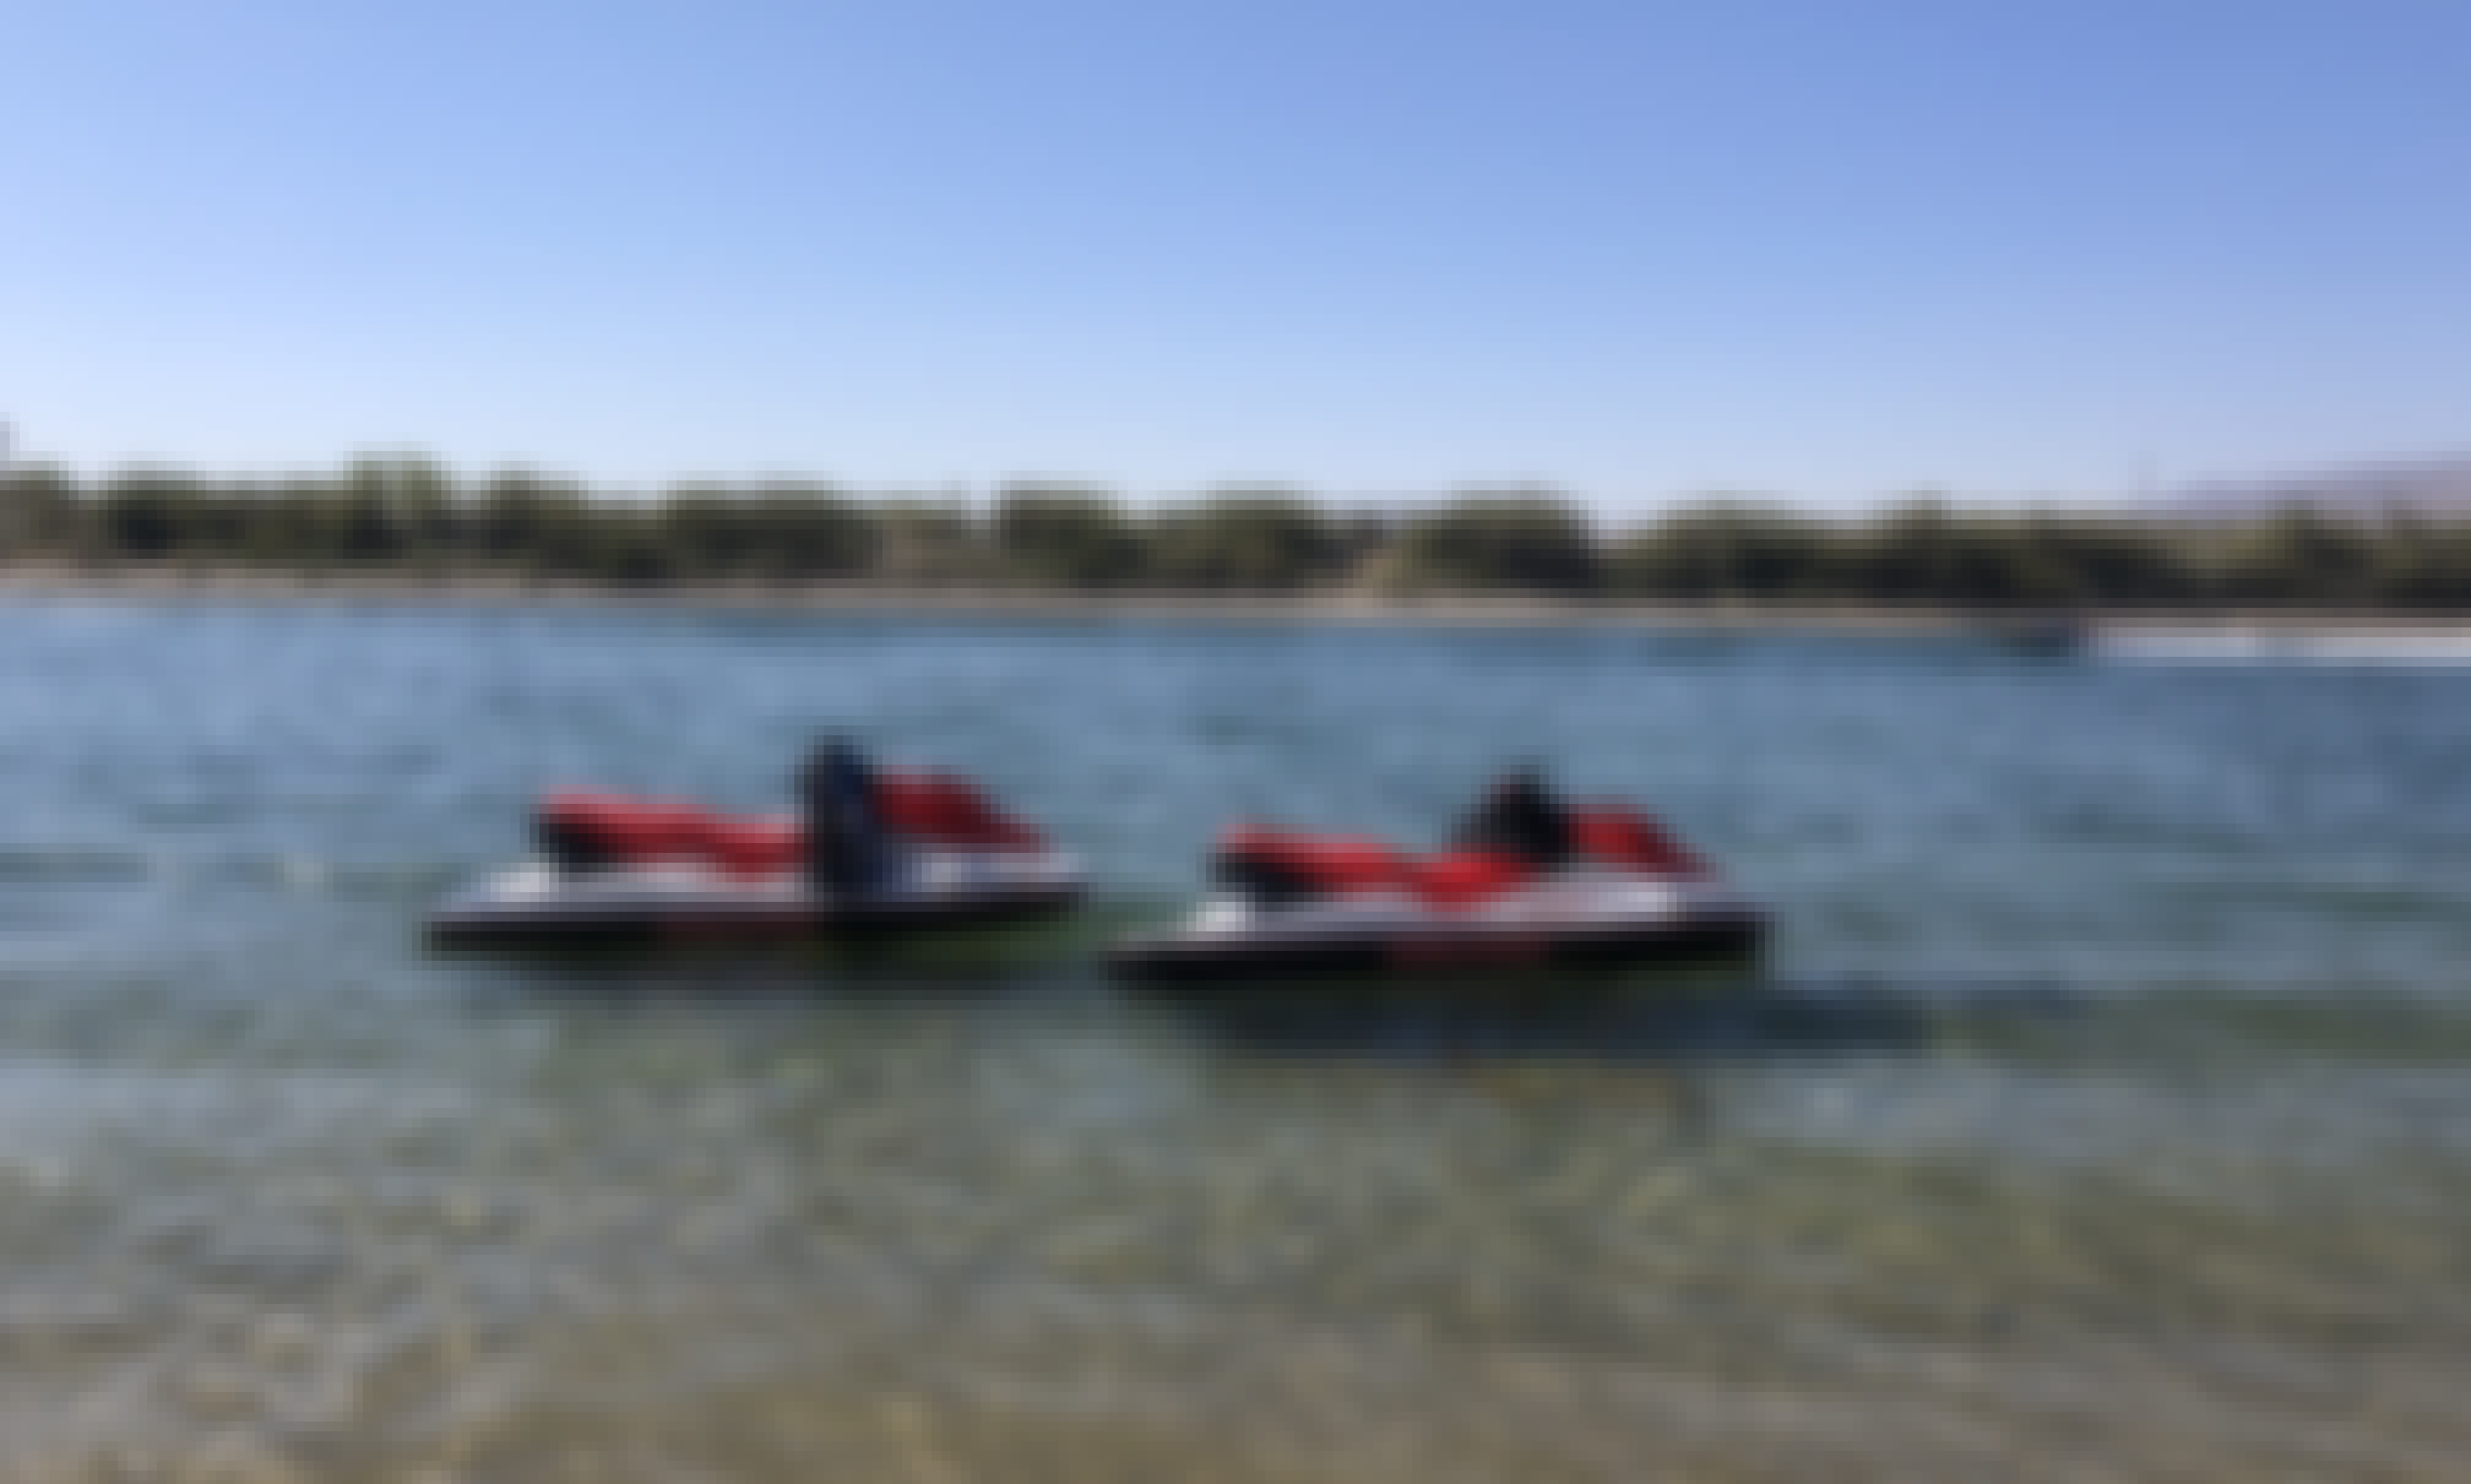 Two Seadoo Jetskis for rent in California